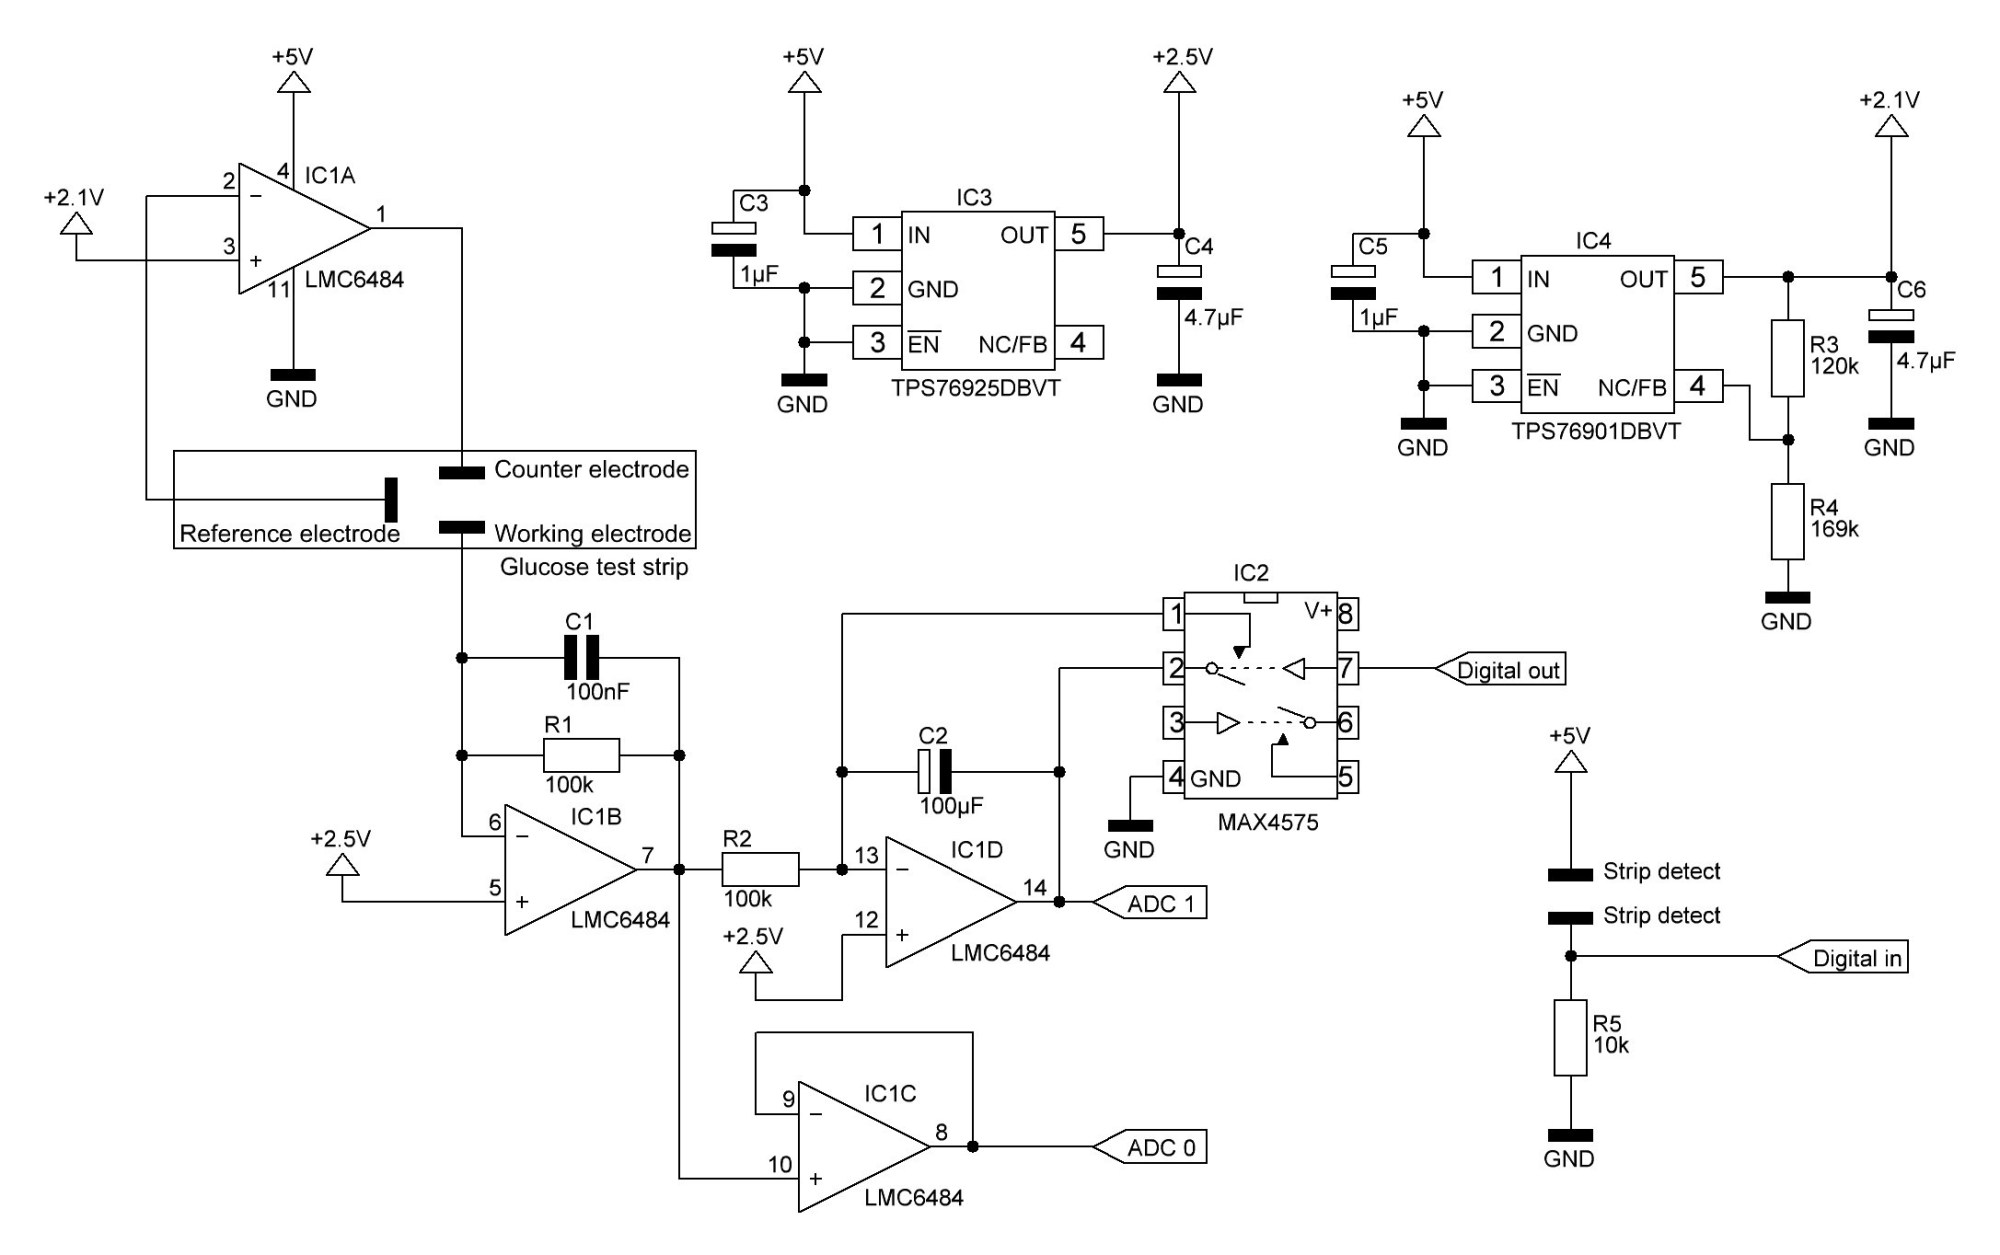 hight resolution of basic glucose meter schematic details hackaday io basic glucose meter schematic